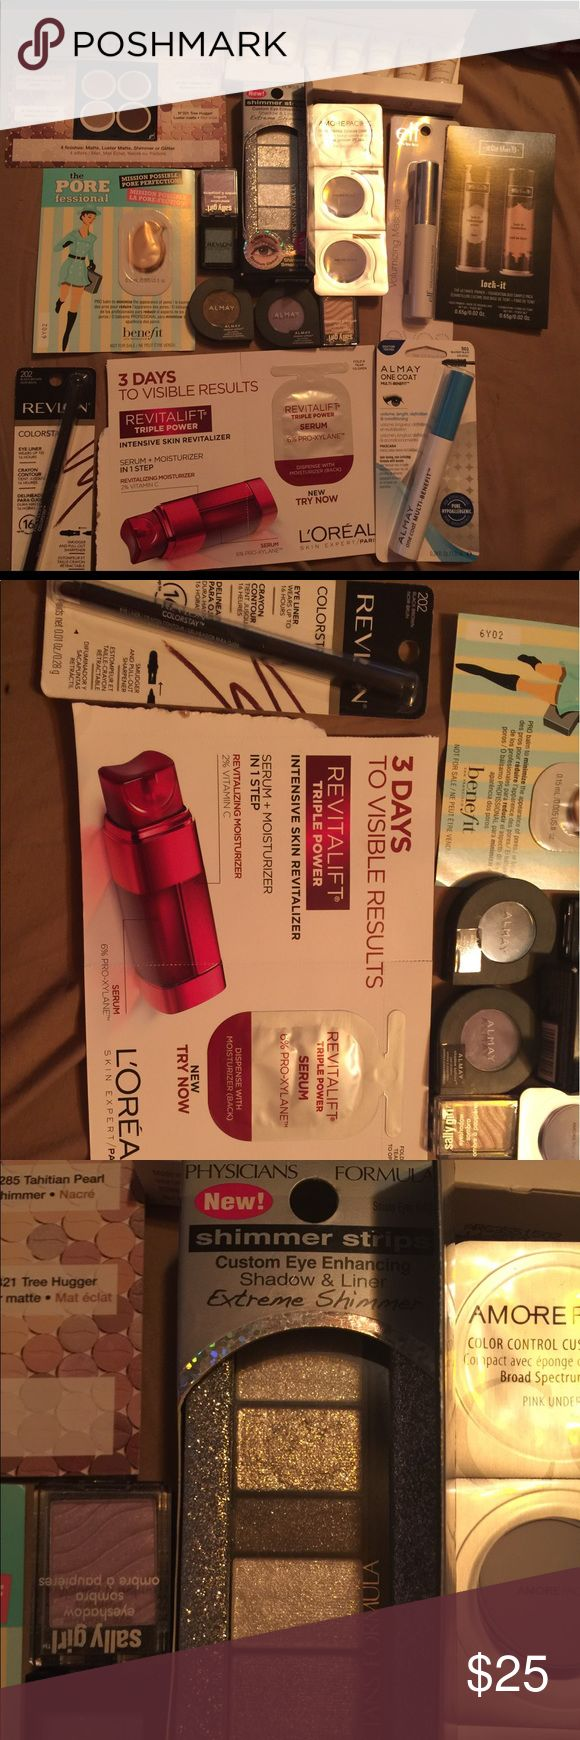 15 piece makeup skincare bundle new! New makeup bundle never used new with tag never opened and samples including arbonne anti aging , sephora colorful eyeshadow, the pore fessional , amore pacific , kat von d lock it foundation sample, L'Oréal skin care revitalift . The makeup is full size (not samples ) brand new never opened that include Almay one coat multi mascara 501 blackest black , revlon color 202 black brown eyeliner, 2 Almay eyeshadow,1 revlon eyeshadow ,2 Sally girl eyeshadow…